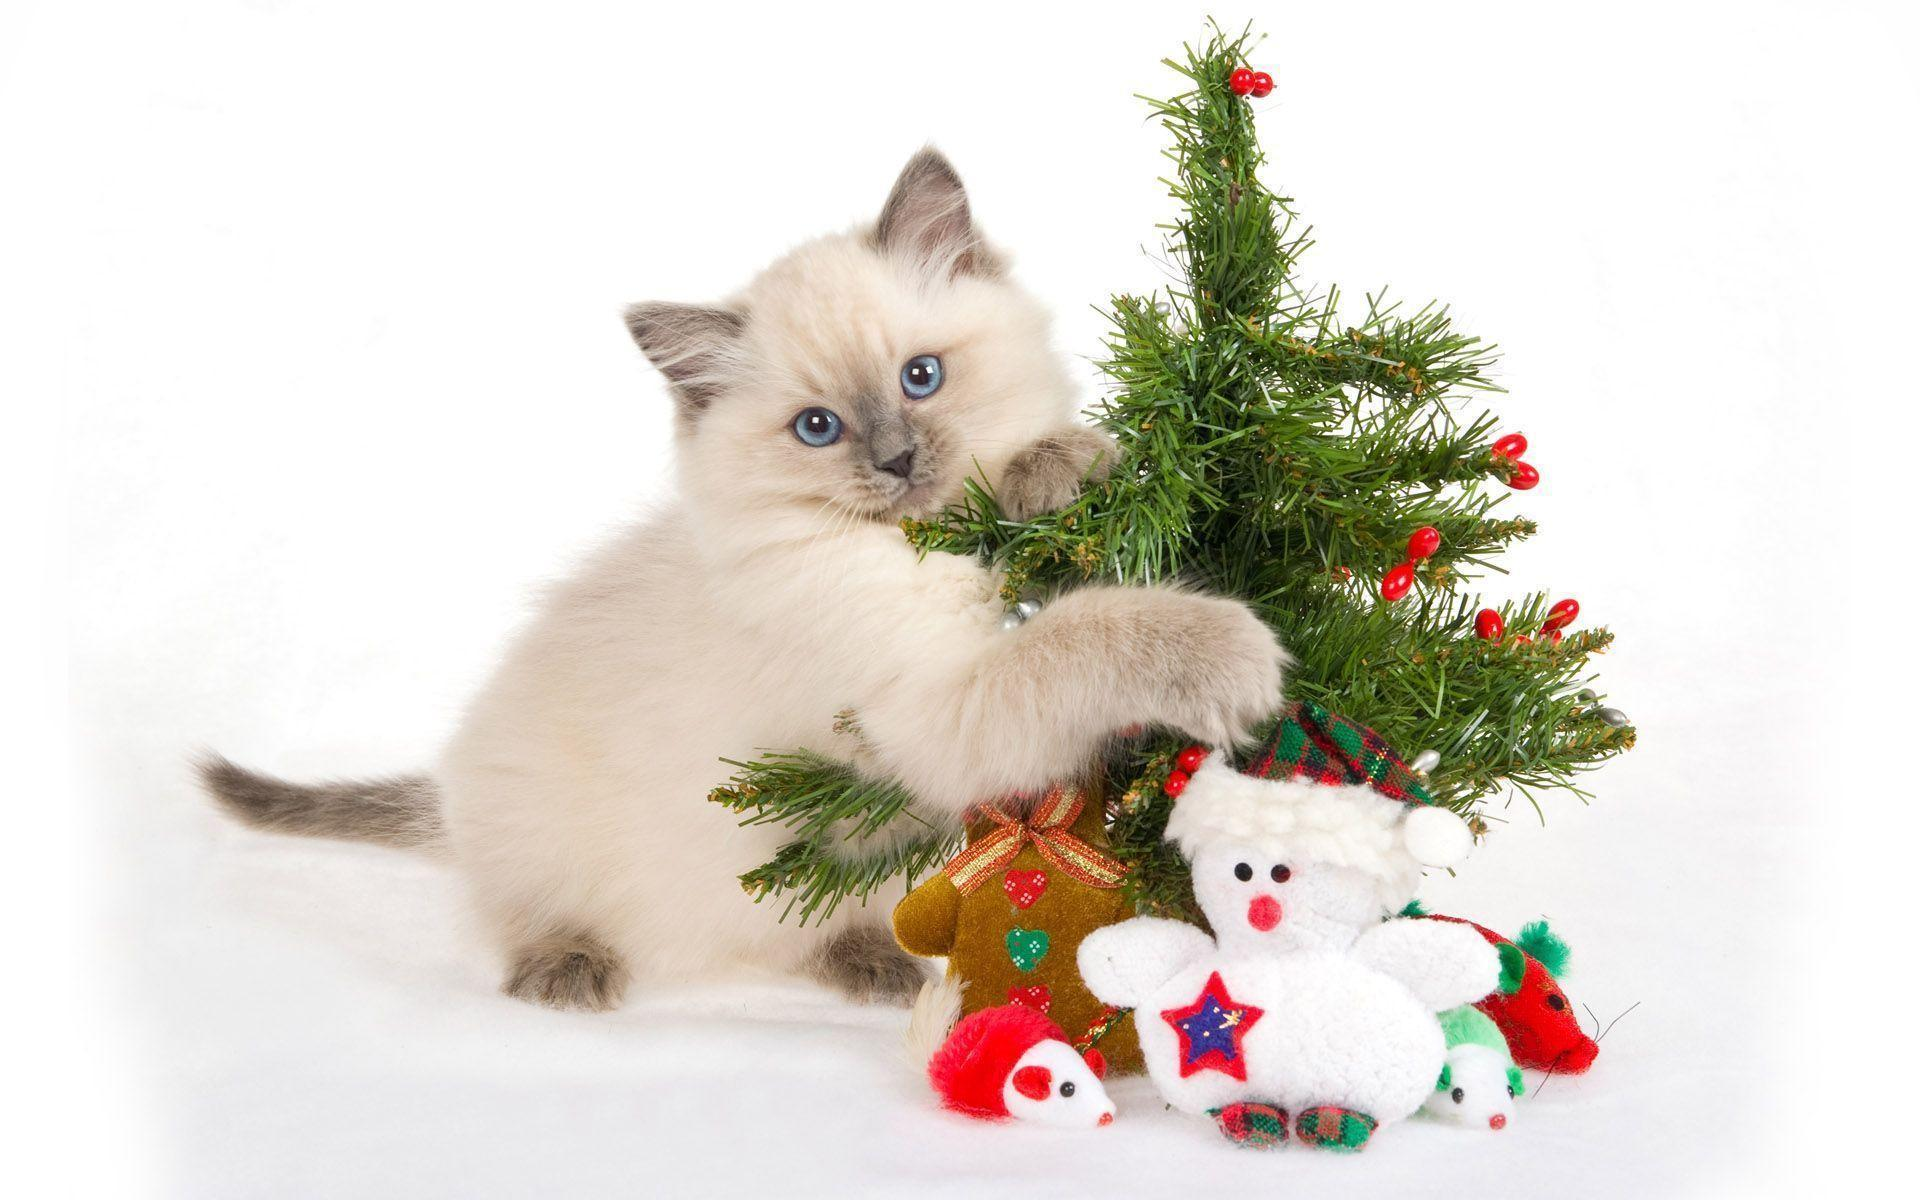 Christmas Kitten Wallpaper Wallpaper | 7ual